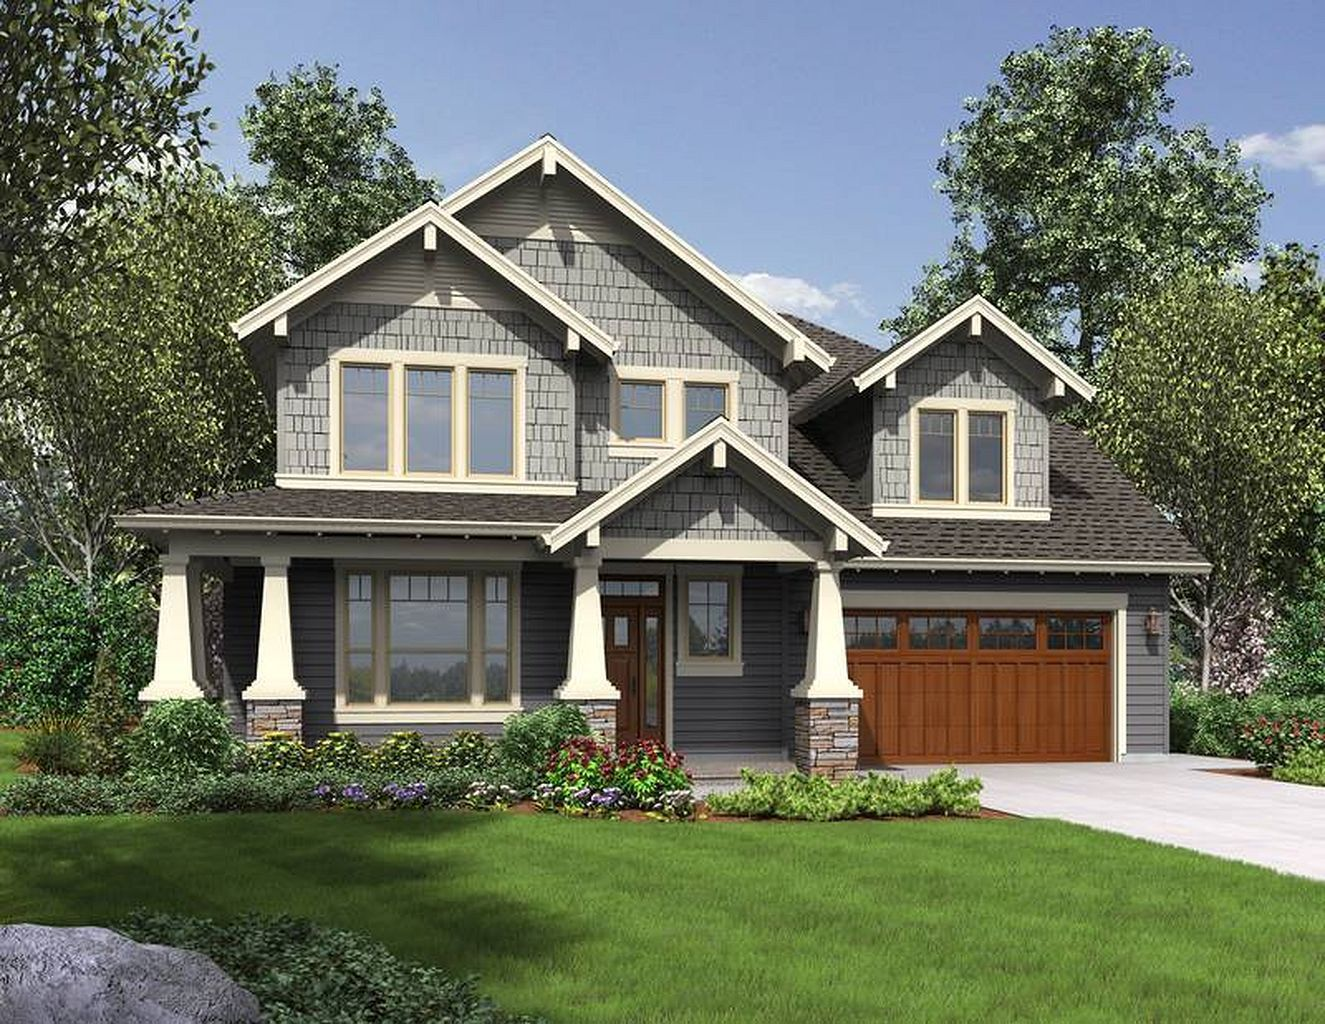 Craftsman Style Homes Exterior Ideas 67 Craftsman House Plans